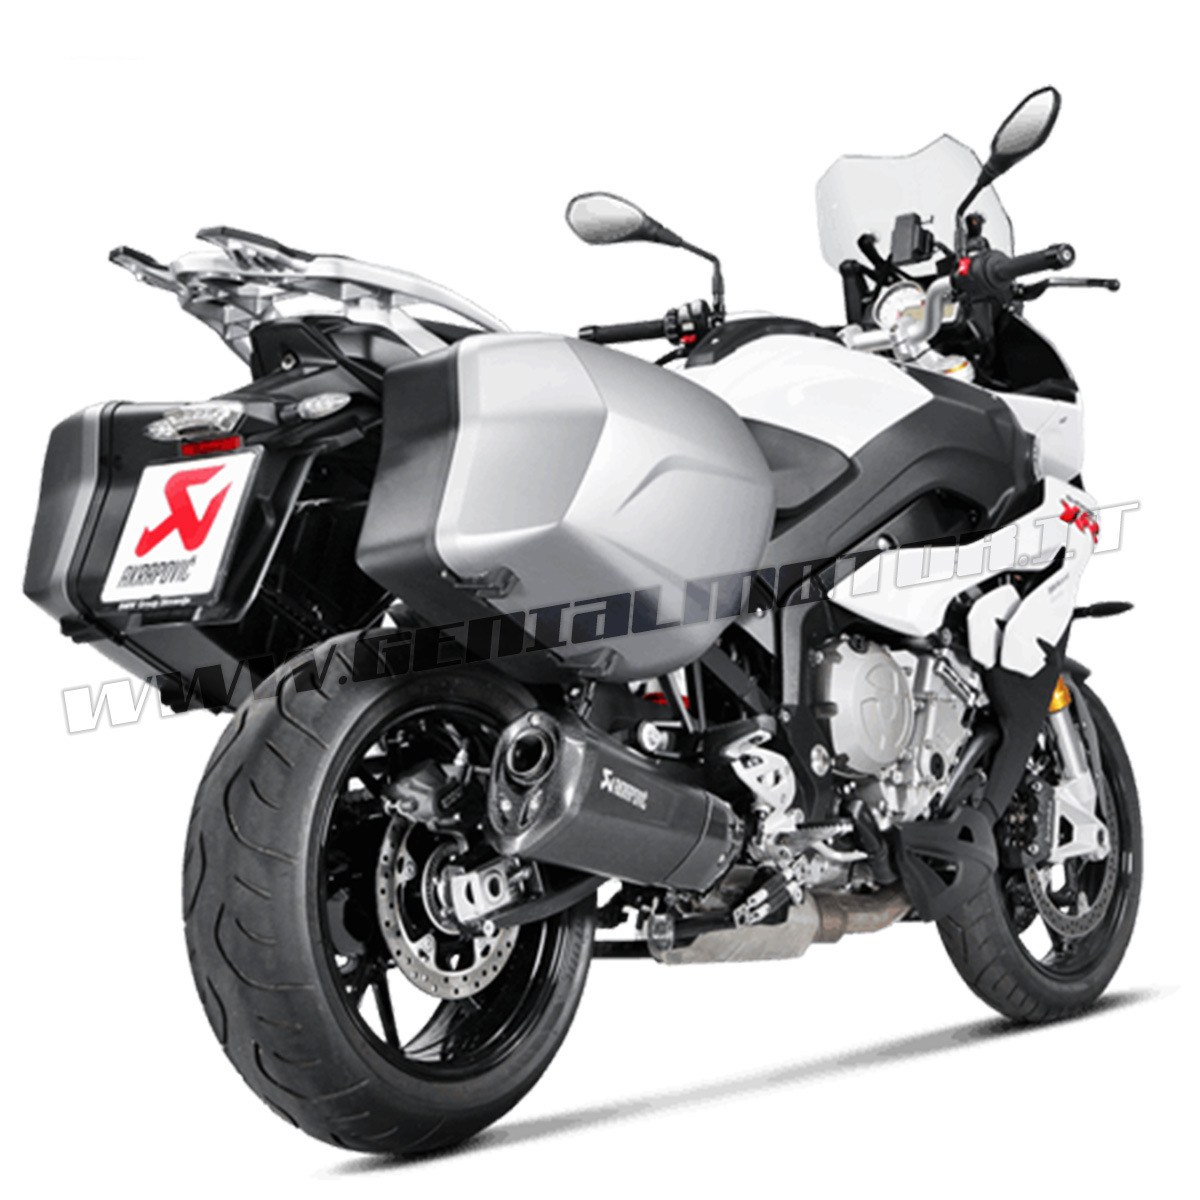 Exhaust Titanium Approved Muffler Akrapovic for Bmw S1000XR 2015 > 2019